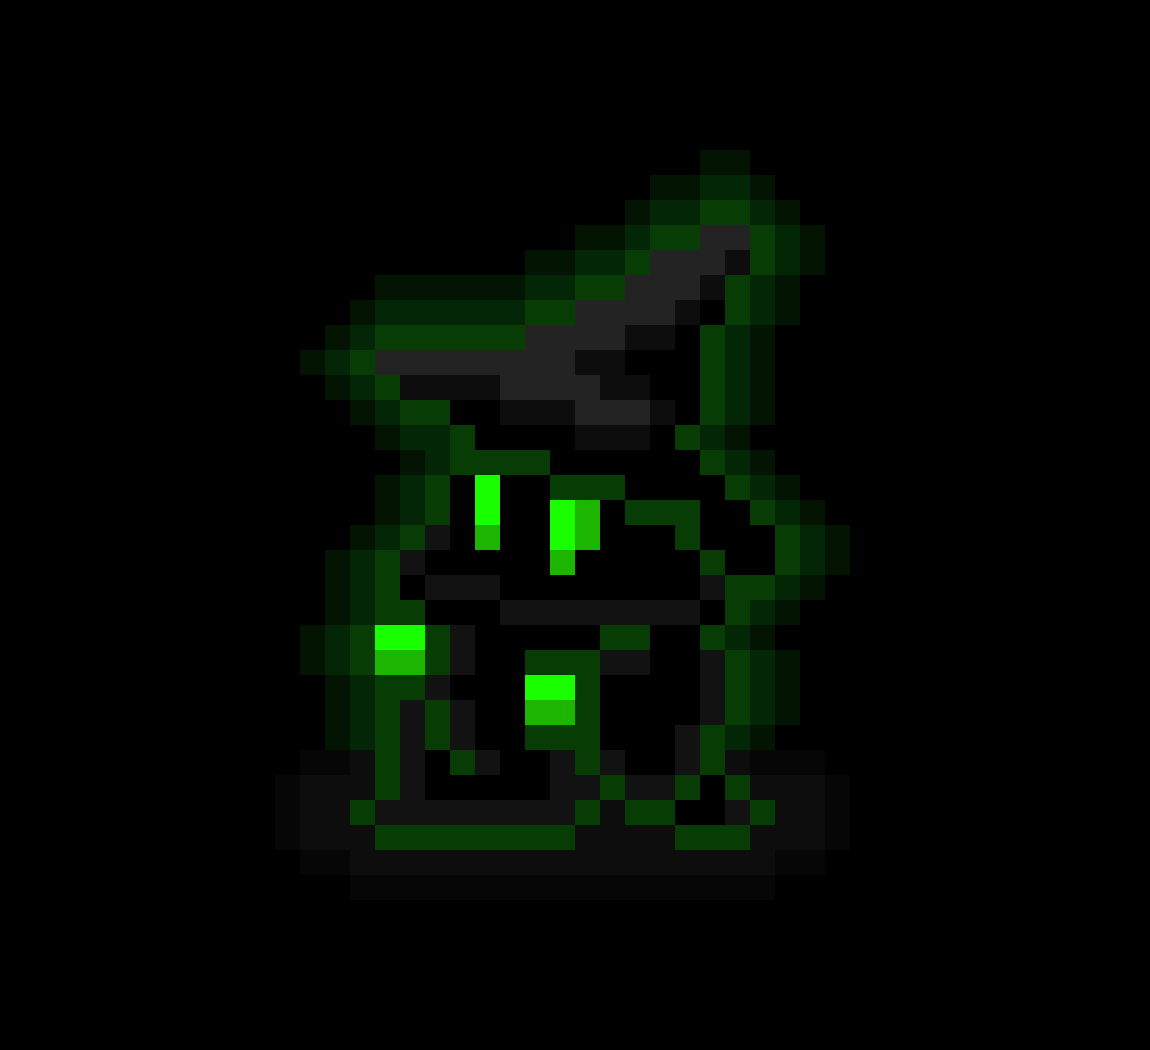 8-bit Green Wizard